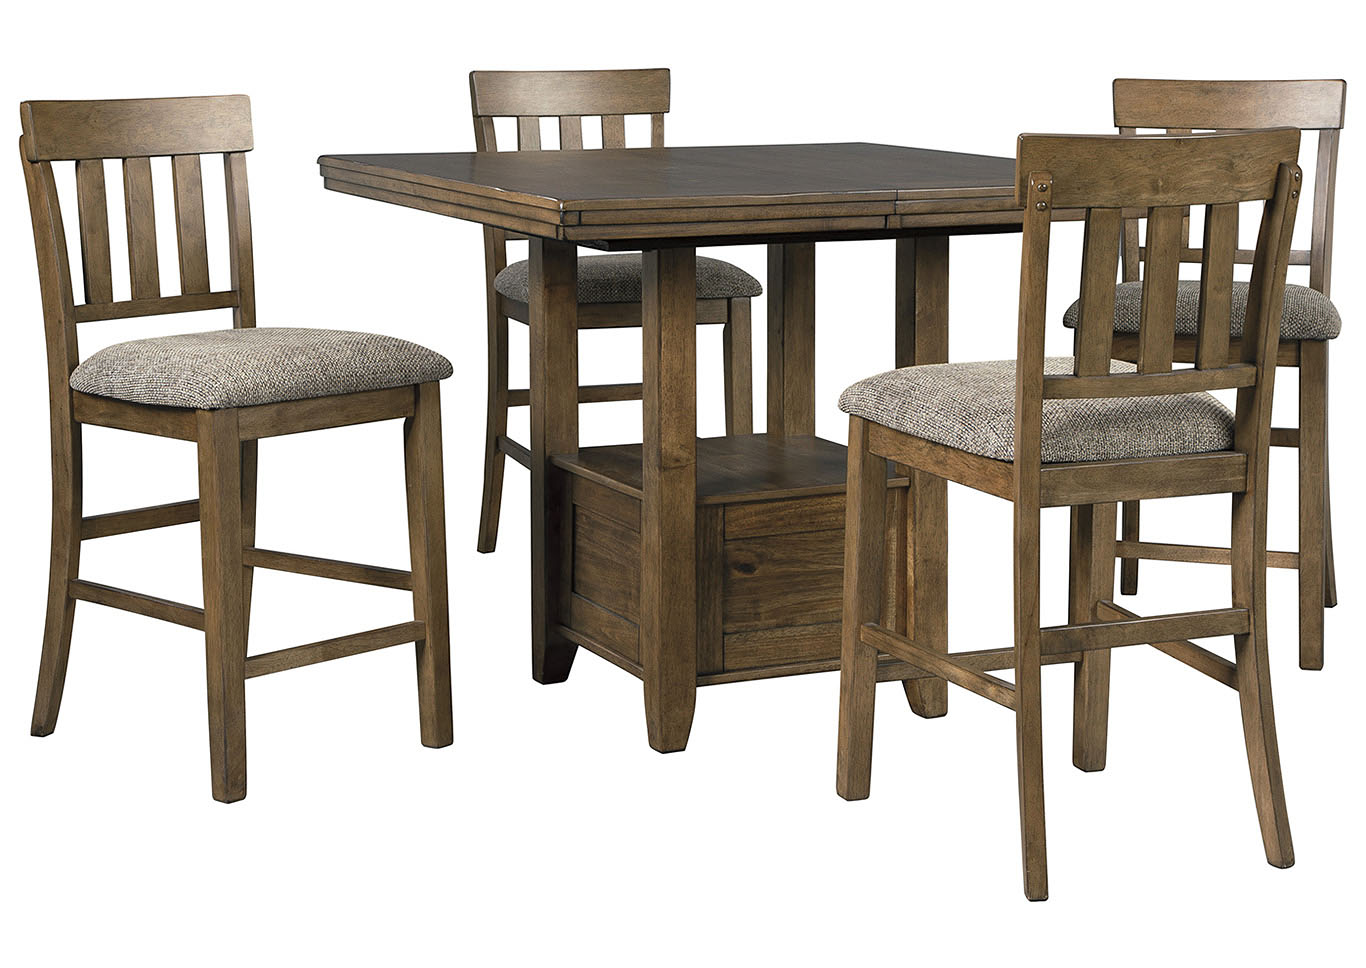 Flaybern Brown Counter Height Table w/4 Bar Stools,Benchcraft